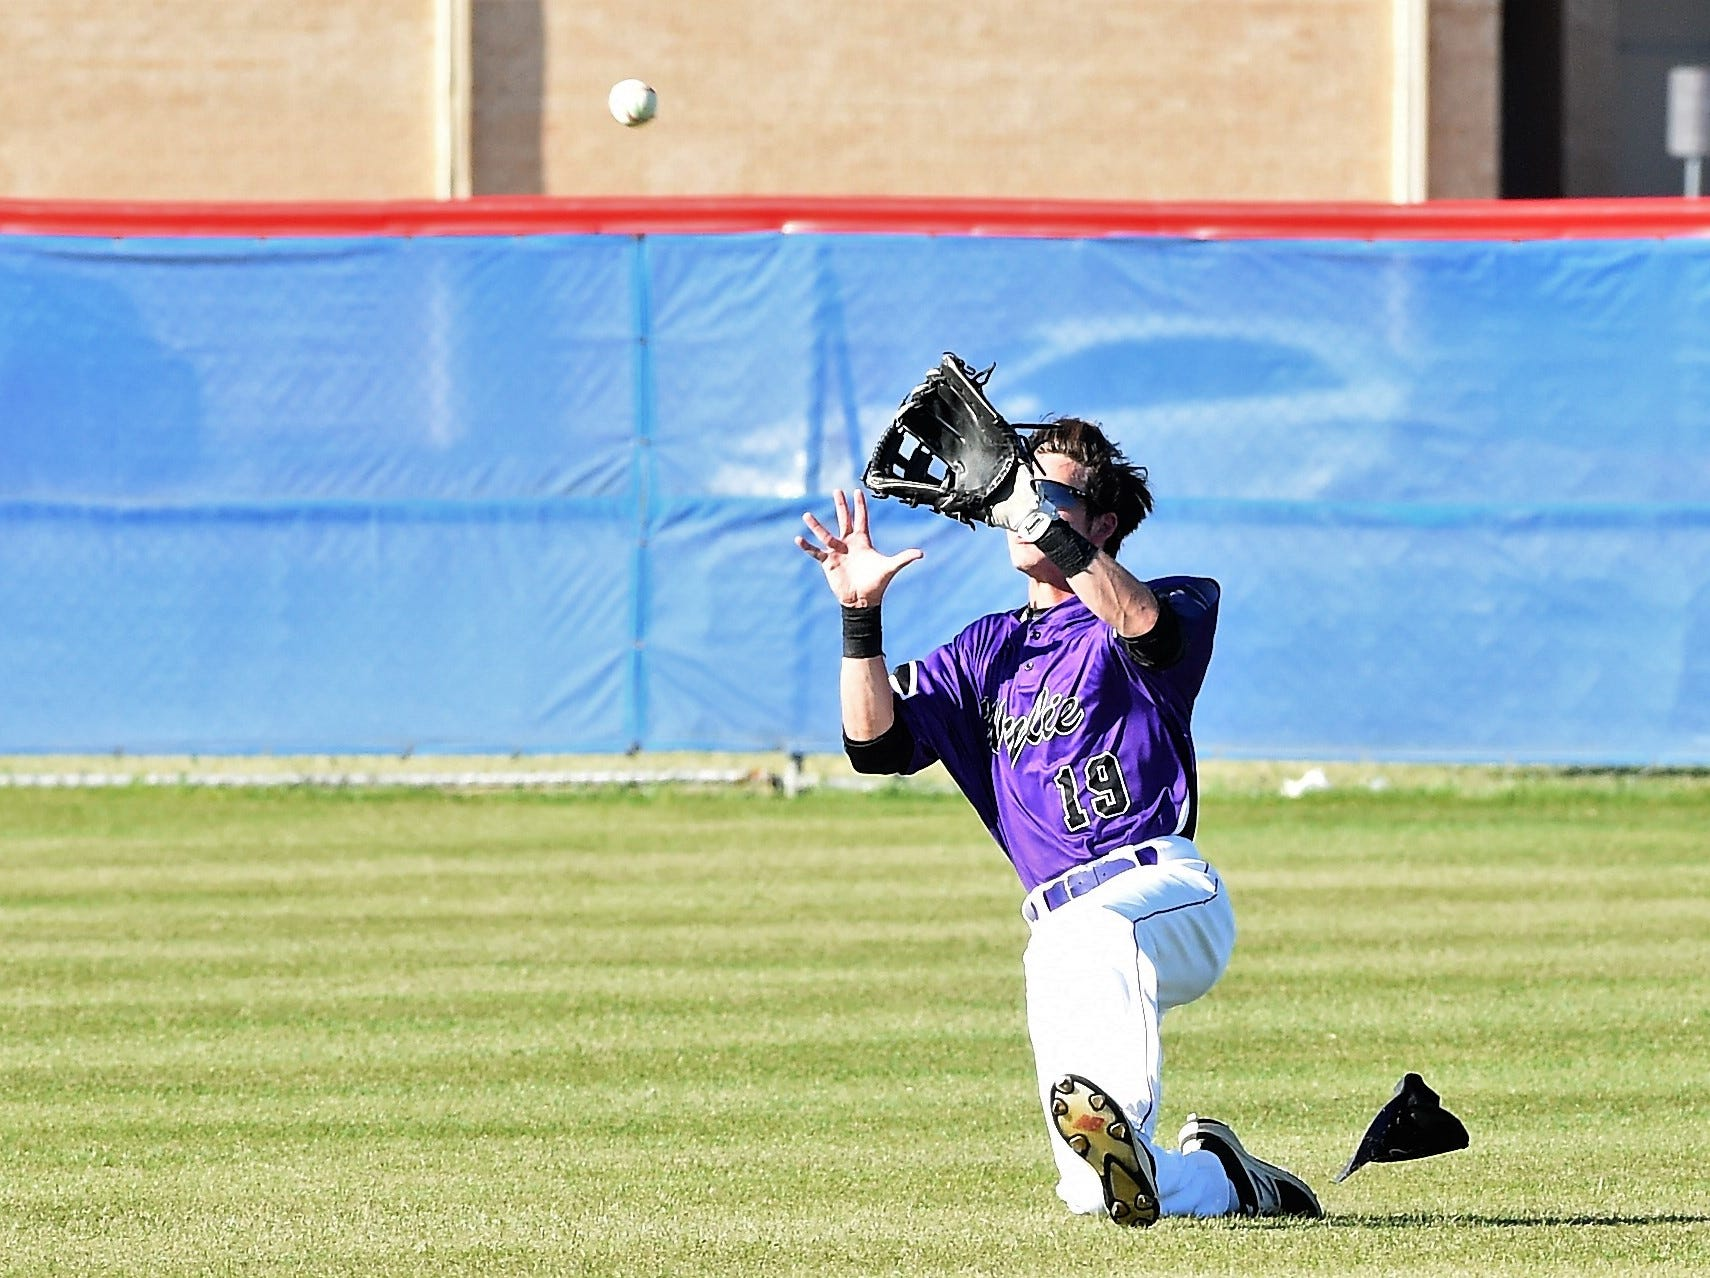 Wylie center fielder Brandon Sanders (19) slides to make the catch against Cooper at Cougar Field on Tuesday, April 9, 2019. Sanders drove in two runs and scored twice in the Bulldogs 11-5 win.